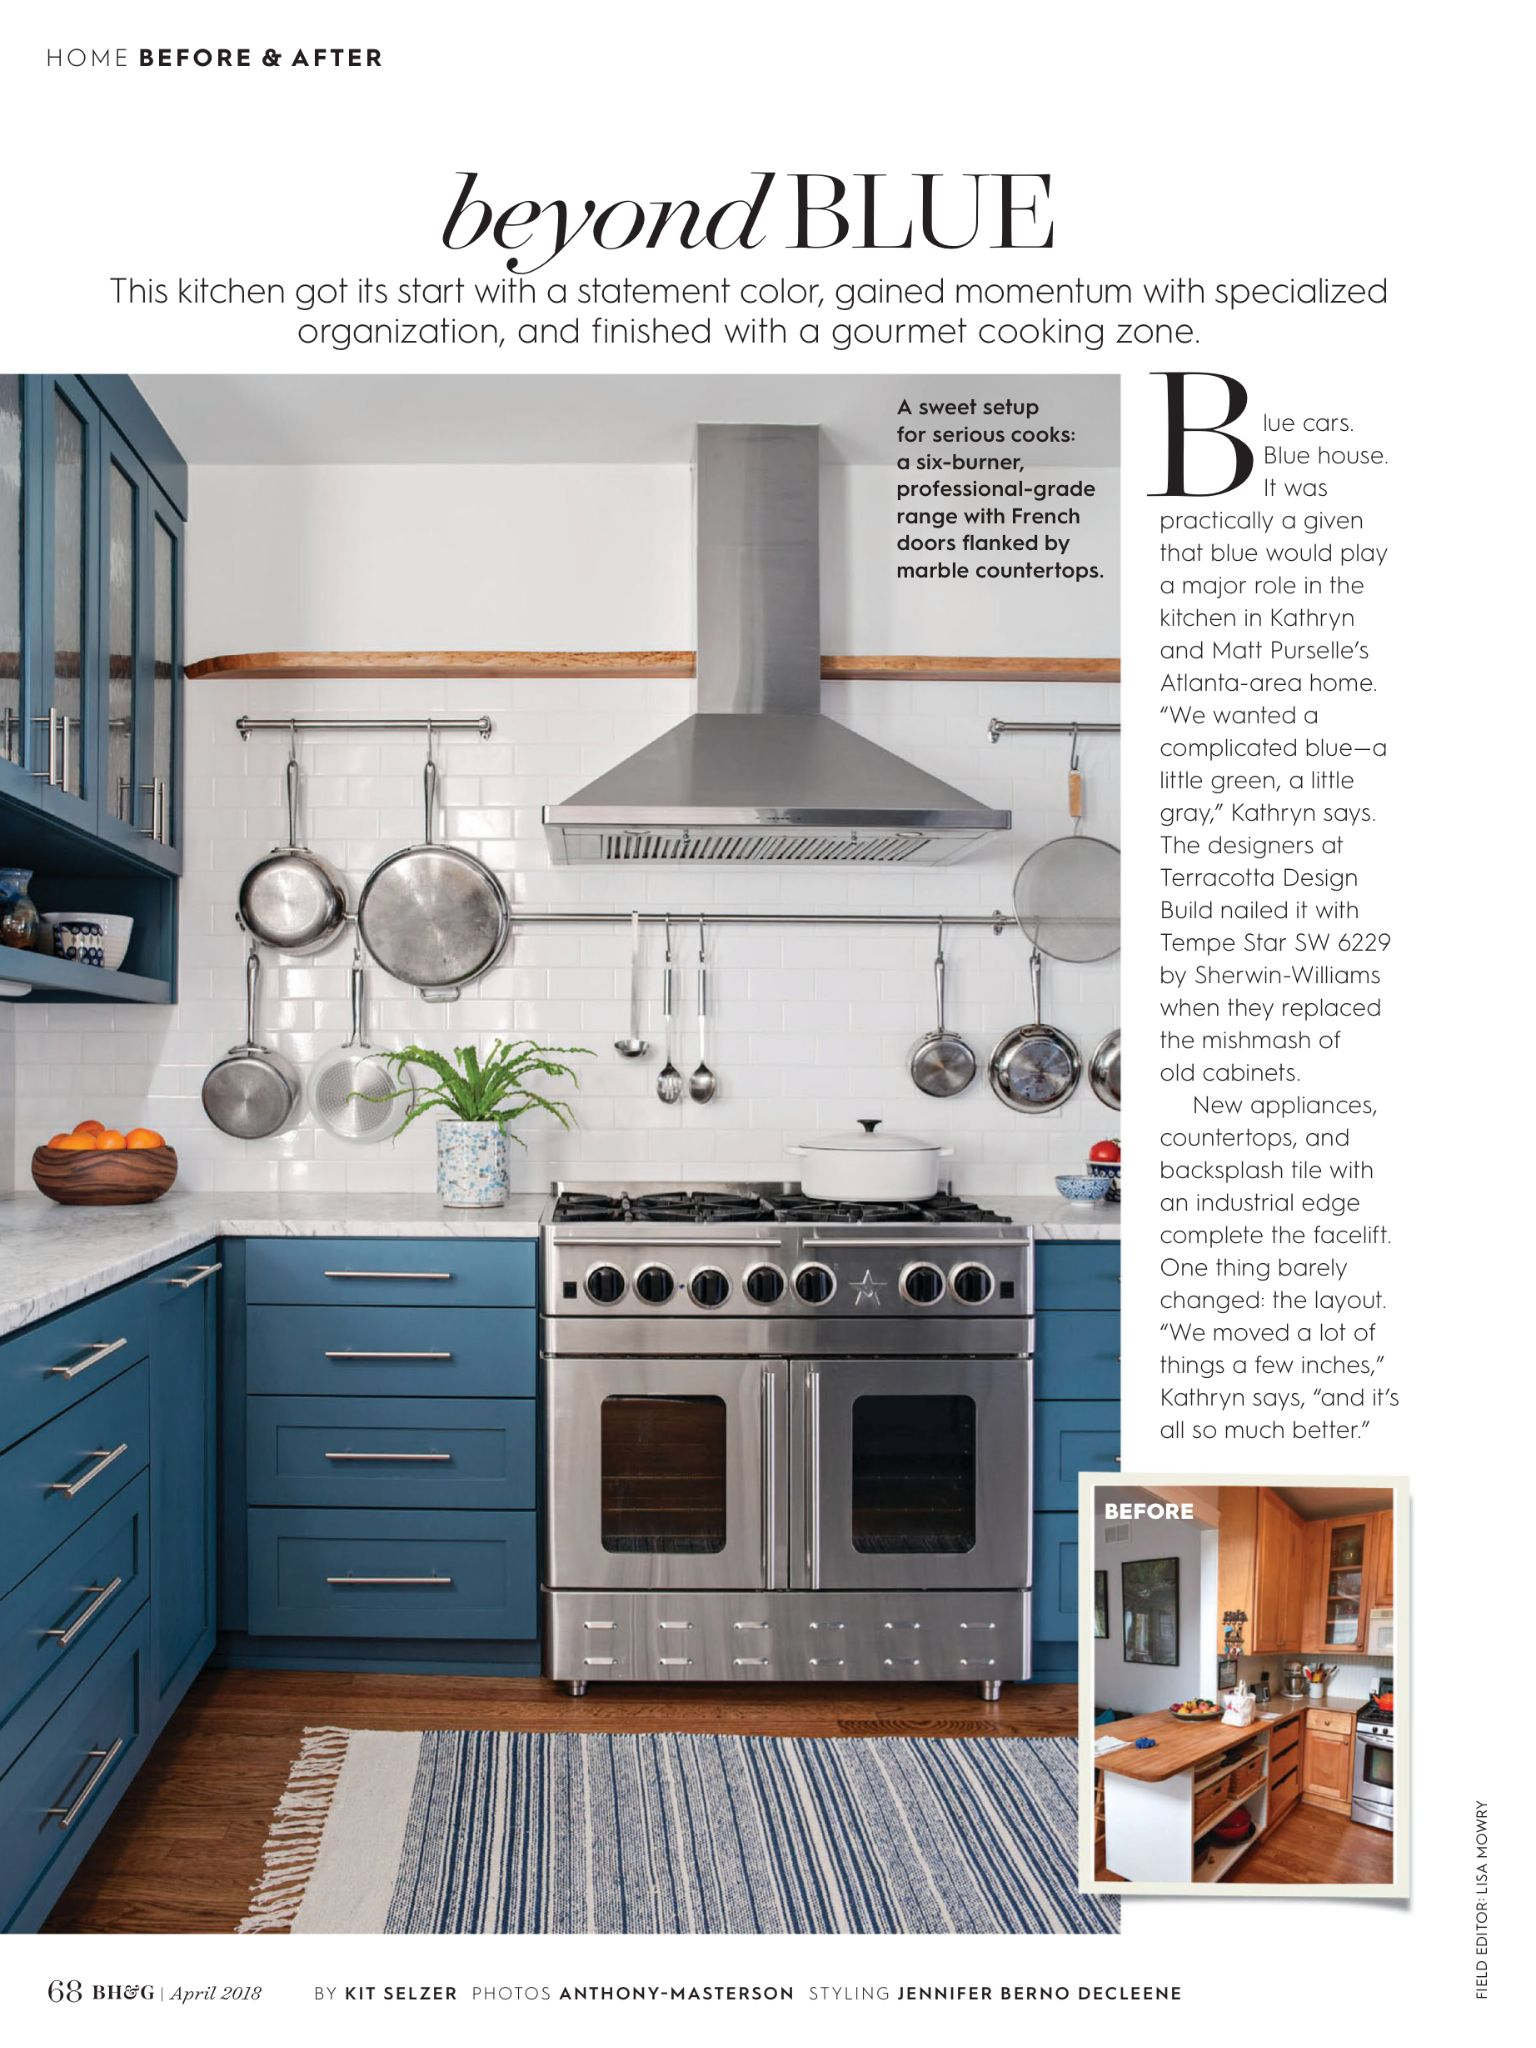 kitchen magazines amazon set beyond blue from better homes and gardens april 2018 read it on the texture app unlimited access to 200 top